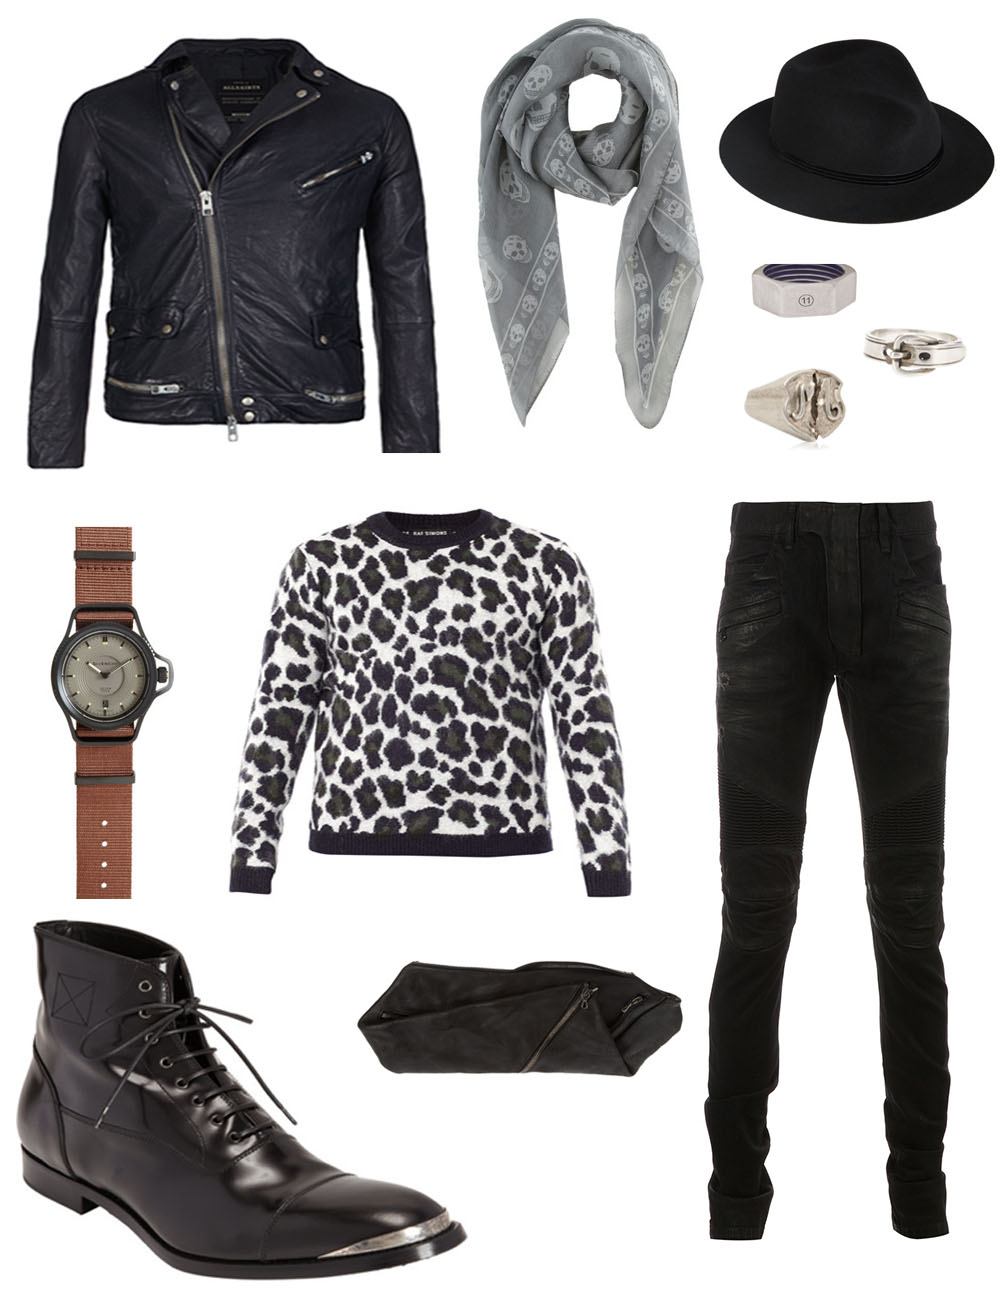 The Kentucky Gent's Black Friday Wish List including Givenchy, Balmain, Alexander McQueen, and All Saints